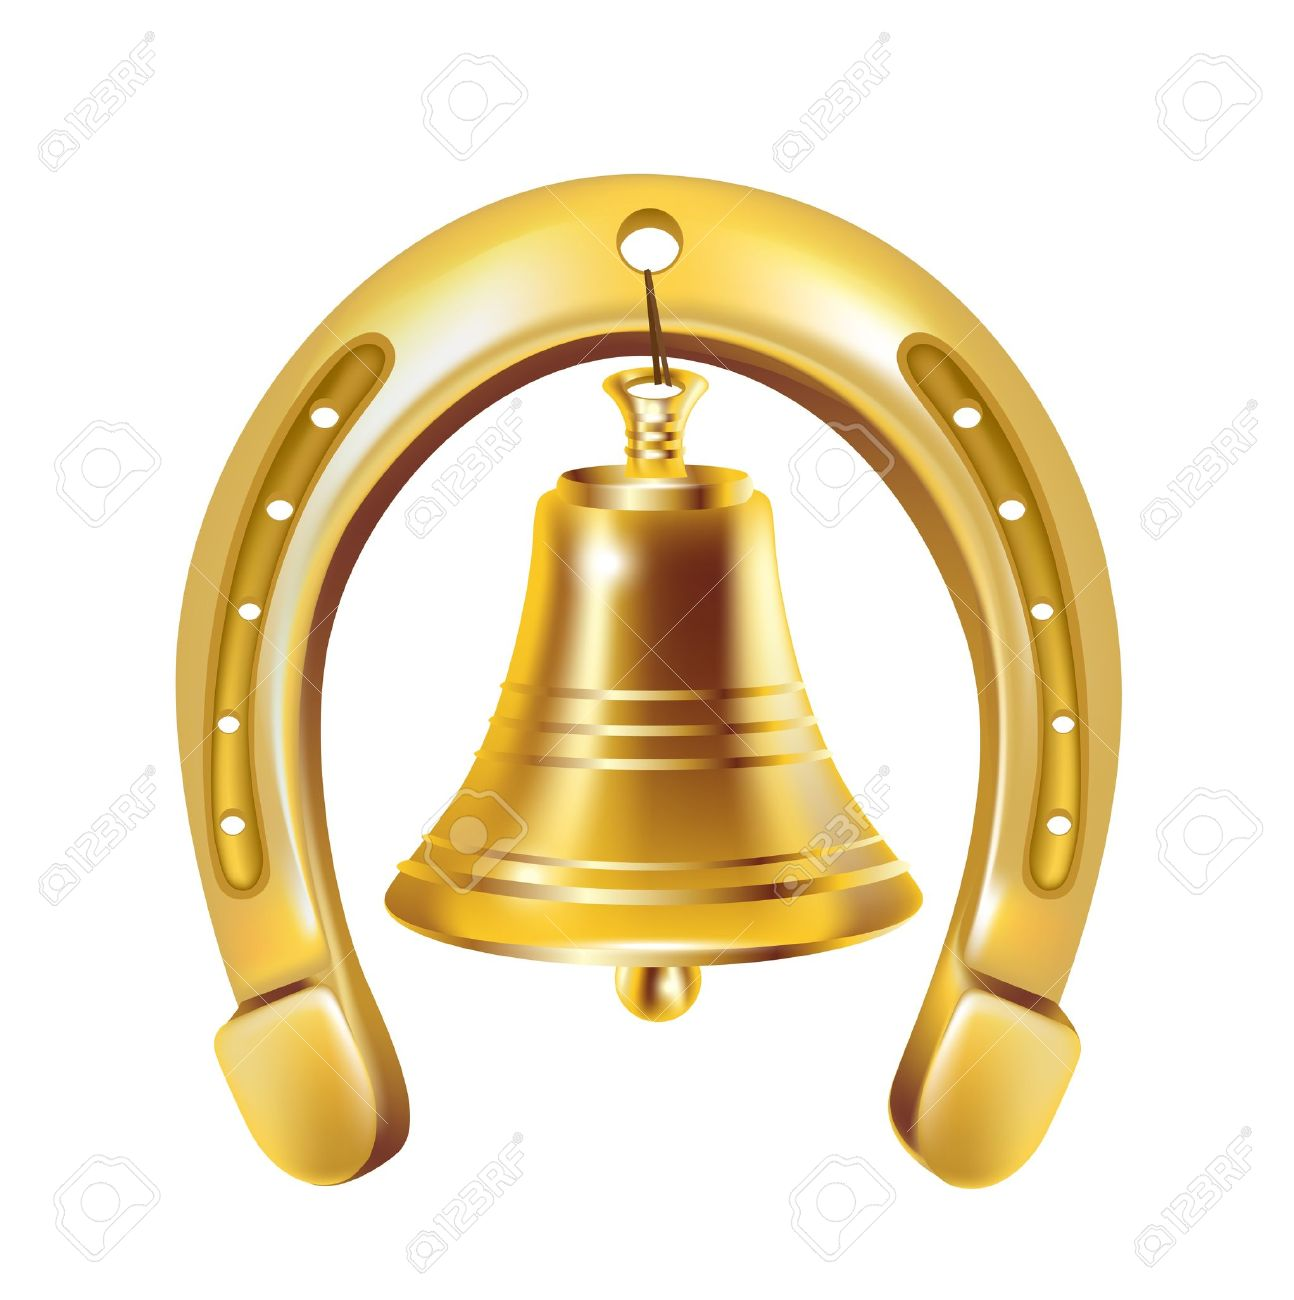 lucky horseshoe and golden bell isolated Stock Vector - 14969068